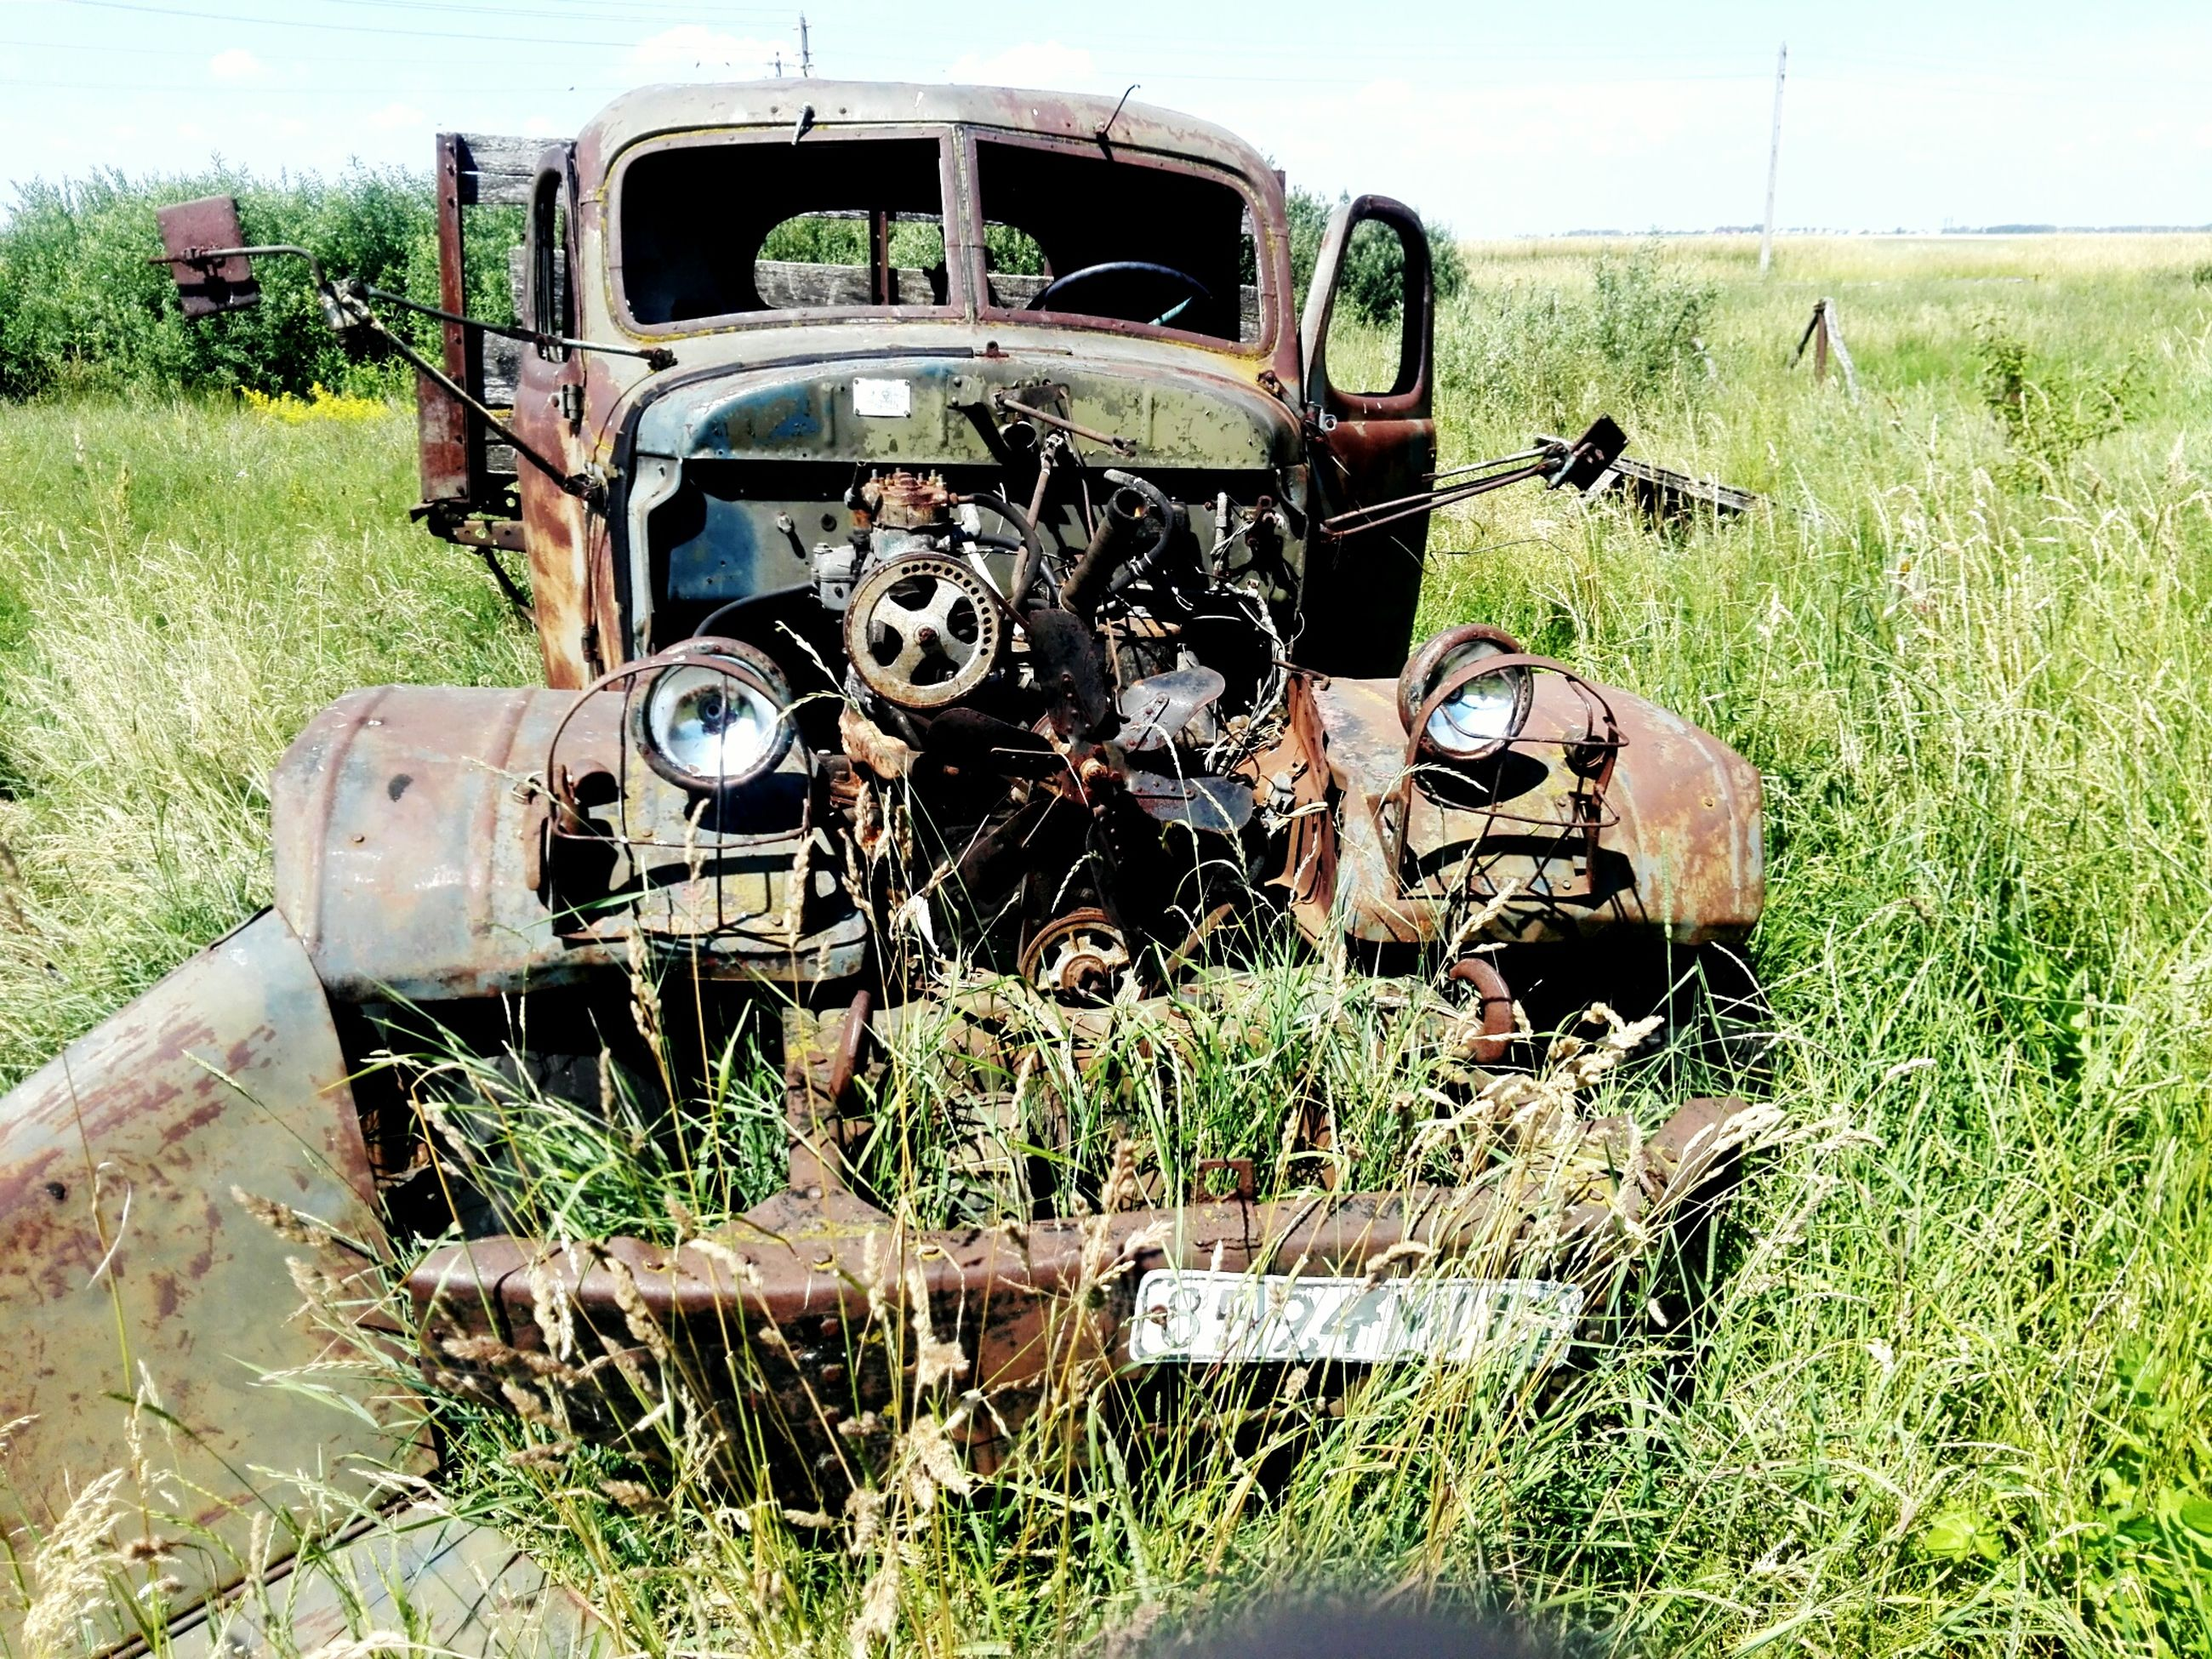 land vehicle, transportation, mode of transport, grass, field, tractor, obsolete, grassy, plant, stationary, old, growth, green color, day, rural scene, run-down, outdoors, no people, parked, nature, machinery, landscape, deterioration